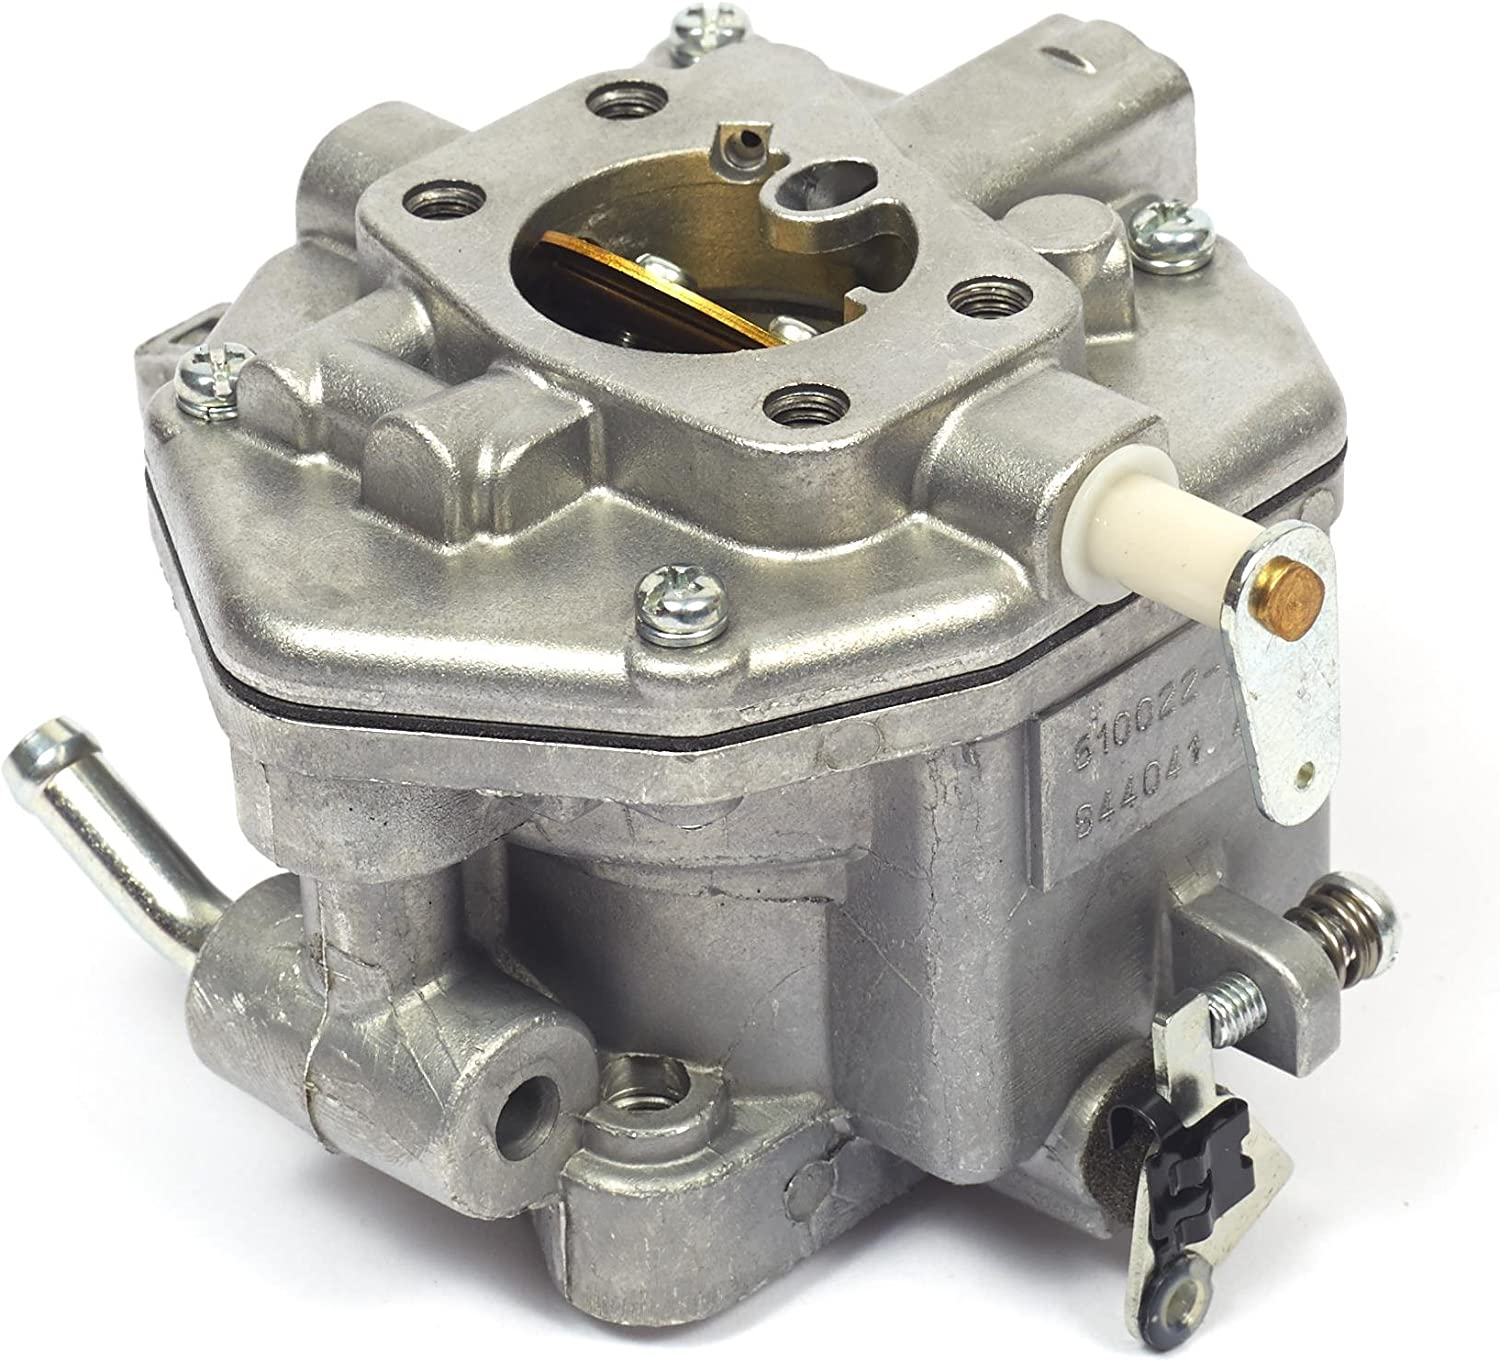 Briggs and Stratton 845906 Carburetor